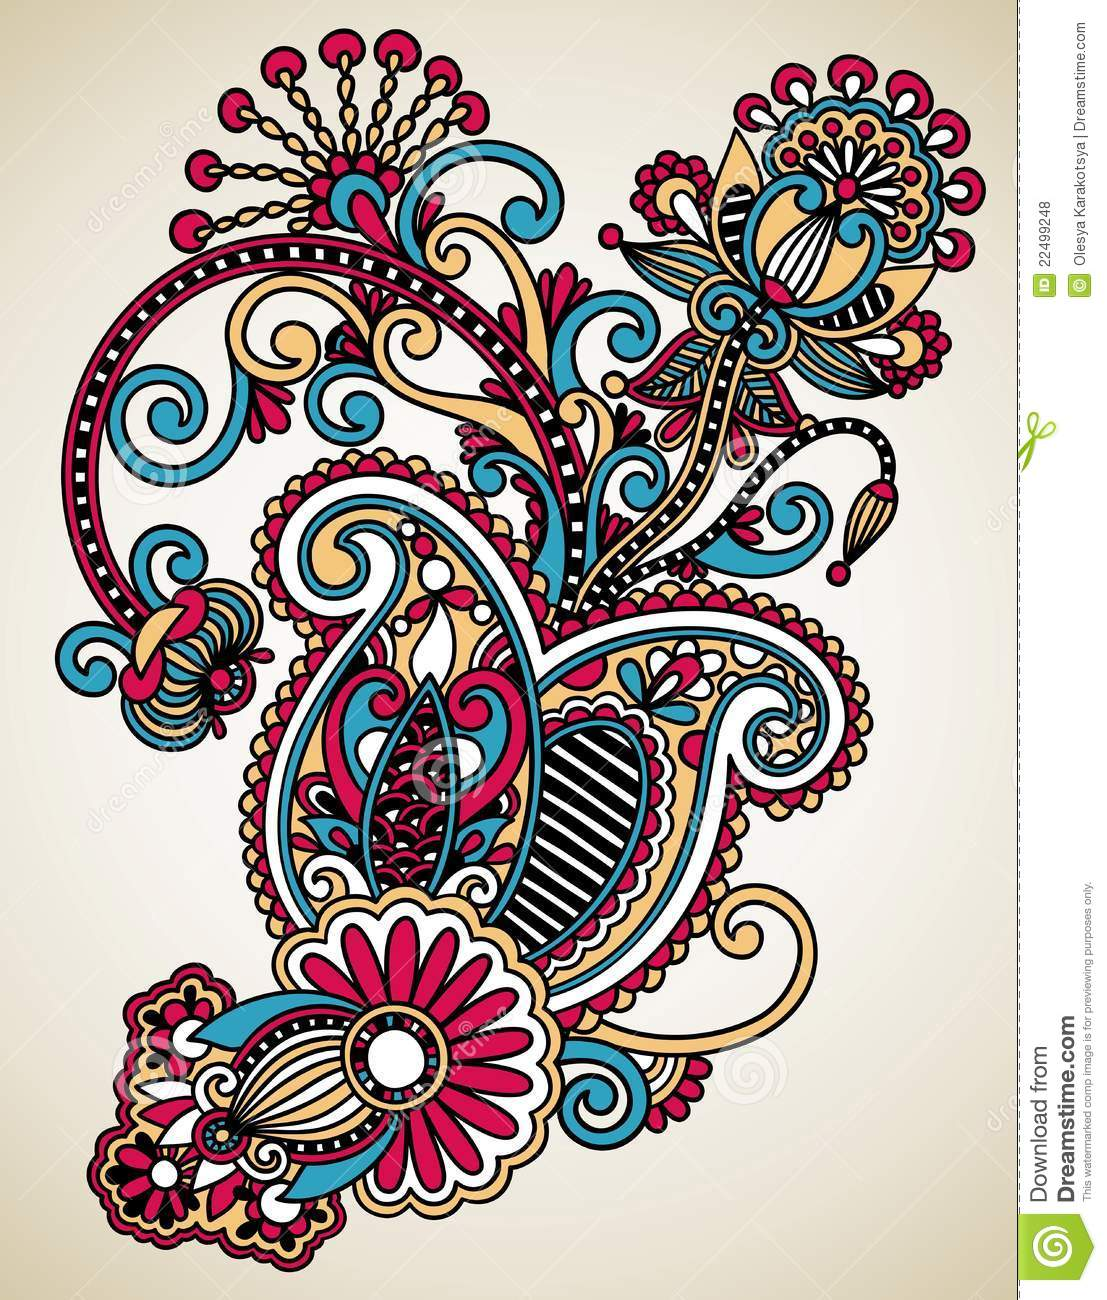 New Line Art Design : Line art ornate flower design royalty free stock photos